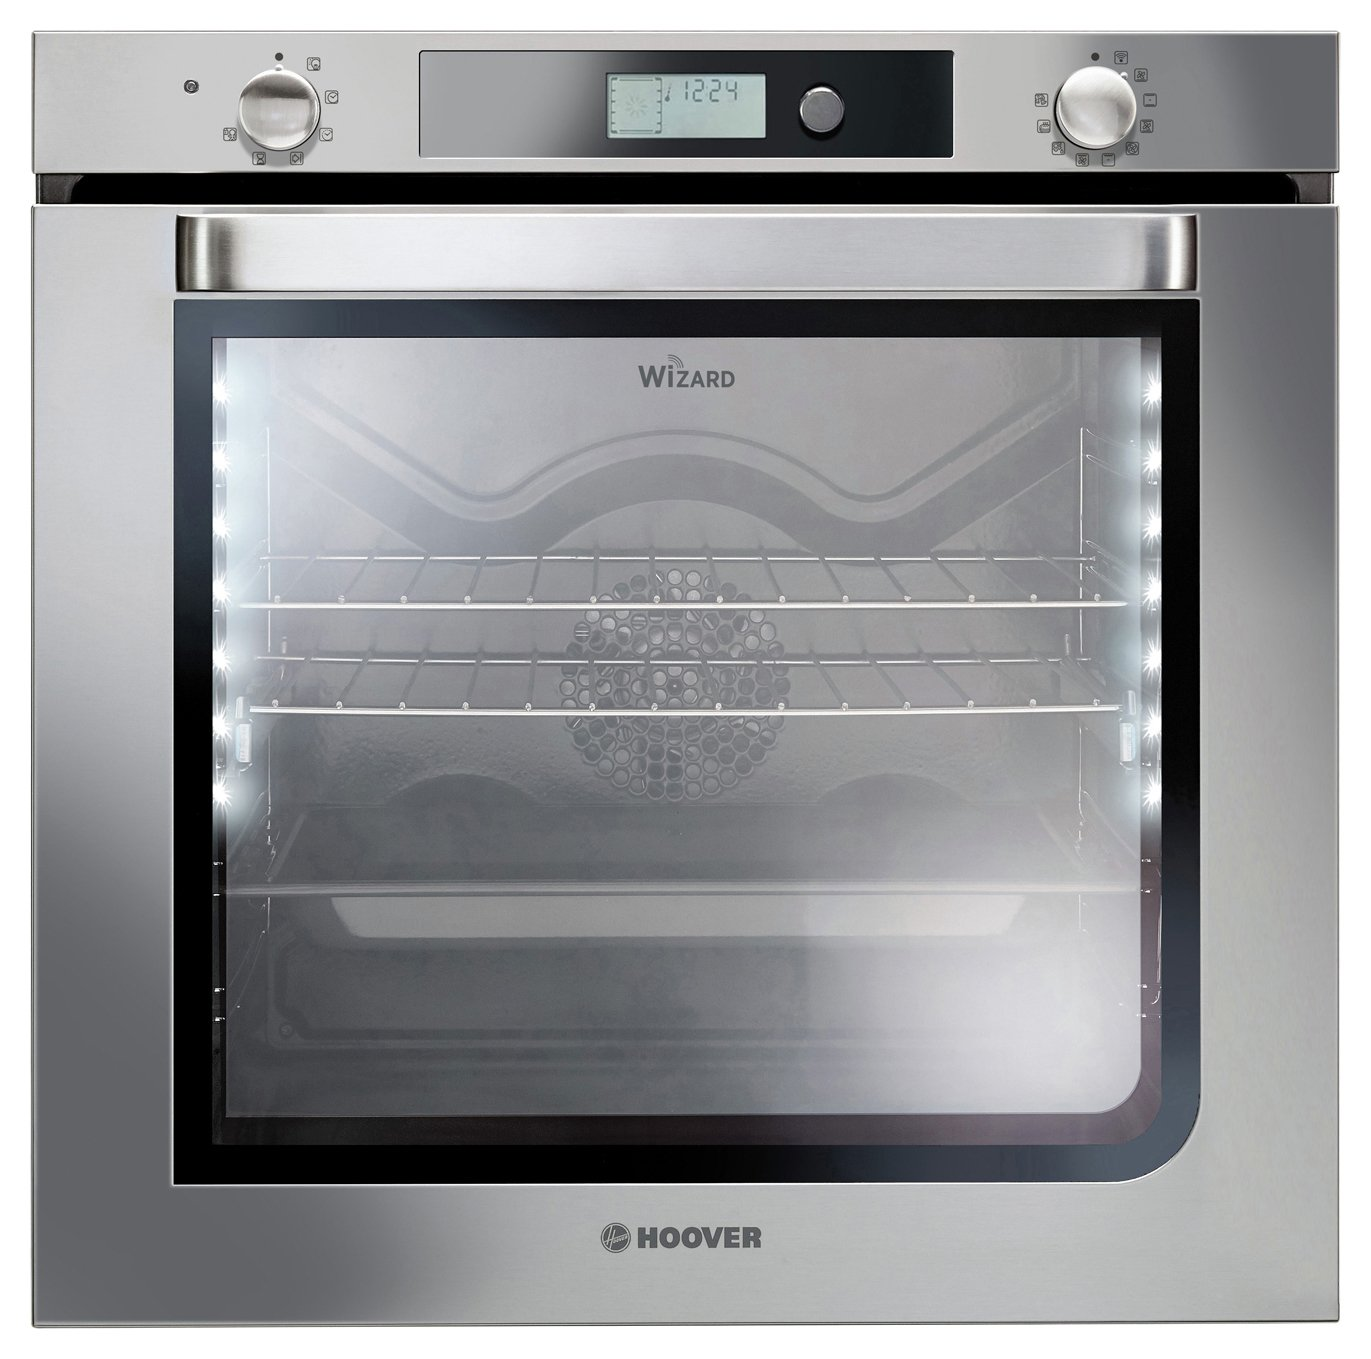 Hoover - Wizard - HOA03VXW Wi-Fi - Built-in - Single Oven